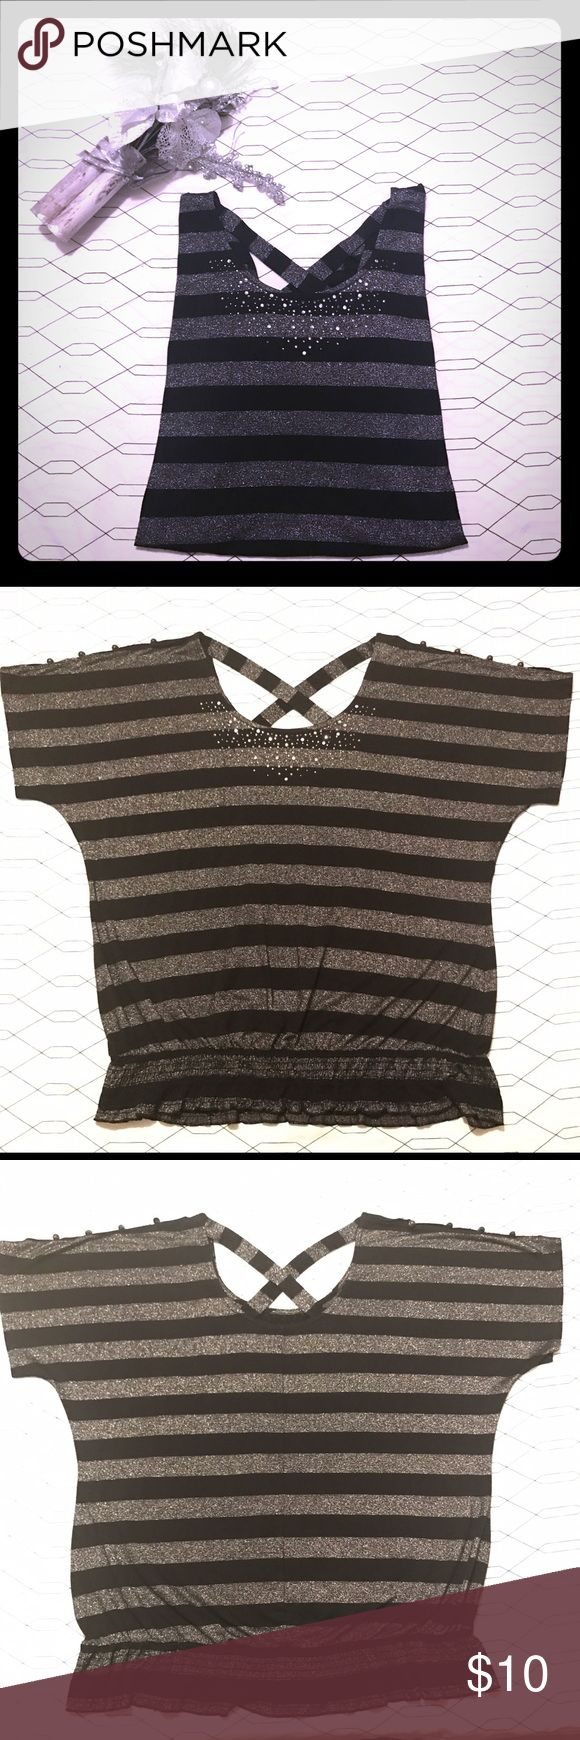 **NWOT** Maurice's plus size blouse Beautiful black & silver stripped sparkling blouse in excellent conditions! Size 1X. Embellished with rhinestones on the chest, X back, & open button down sleeves. From a smoke free, pet friendly home ❤️ Maurices Tops Blouses